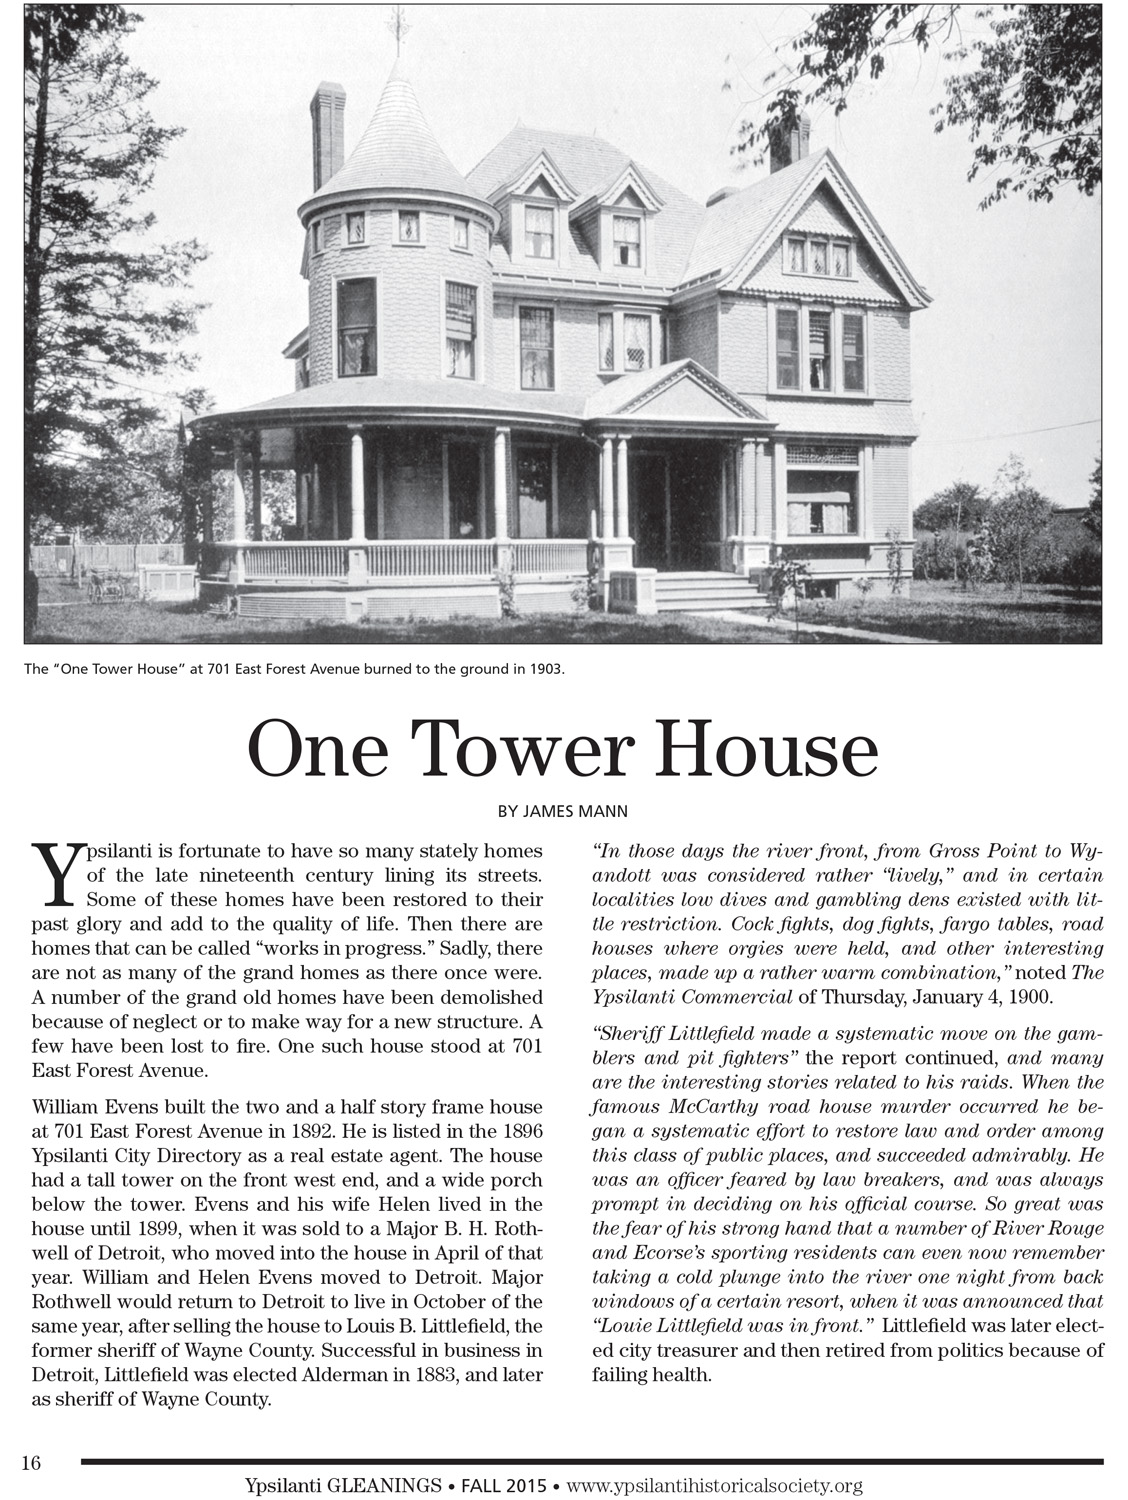 One Tower House image